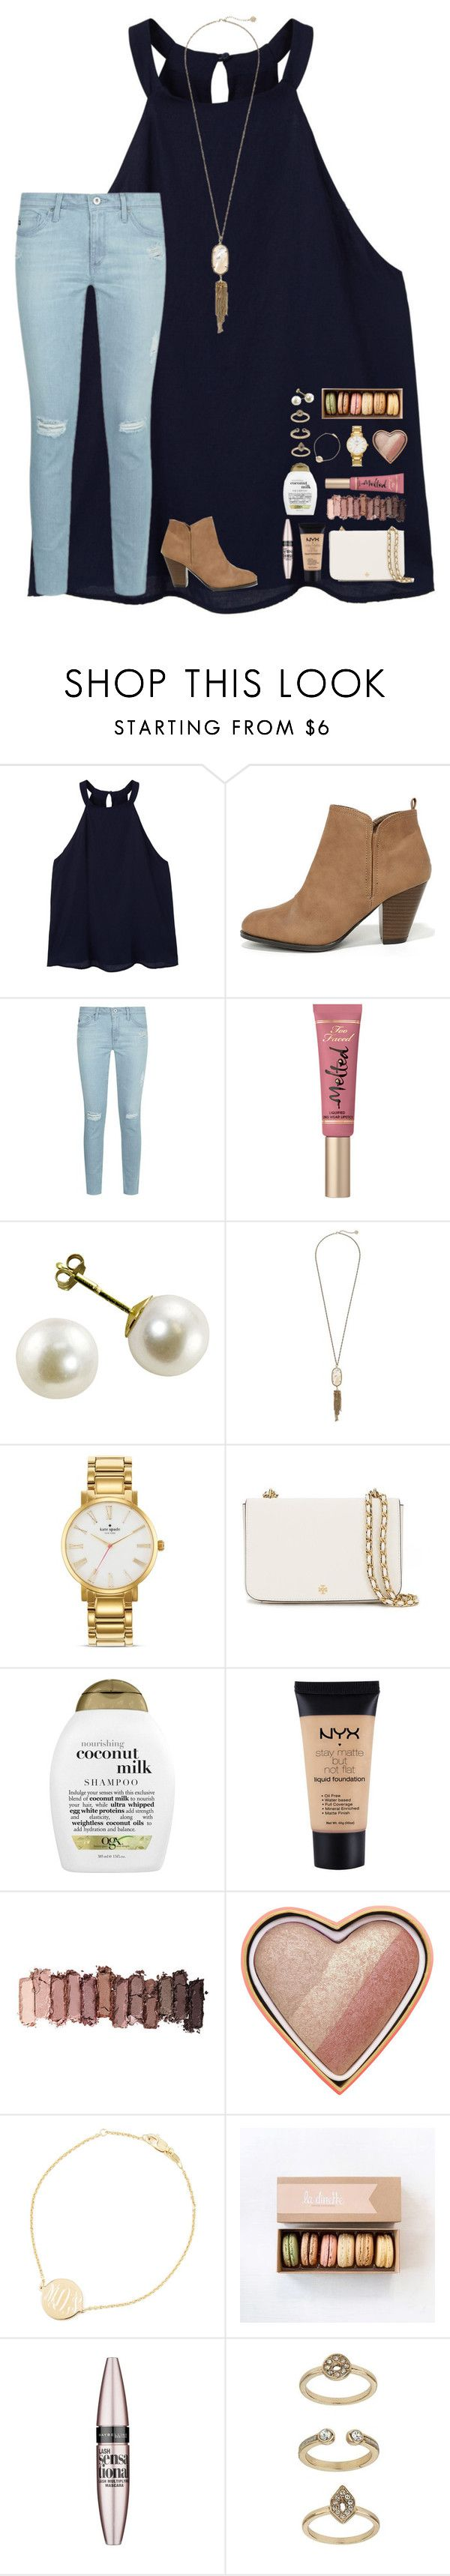 """""""➡️RTD! It's really important!⬅️"""" by lindsaygreys ❤ liked on Polyvore featuring MANGO, Qupid, AG Adriano Goldschmied, Too Faced Cosmetics, Kendra Scott, Kate Spade, Tory Burch, Organix, NYX and Urban Decay"""